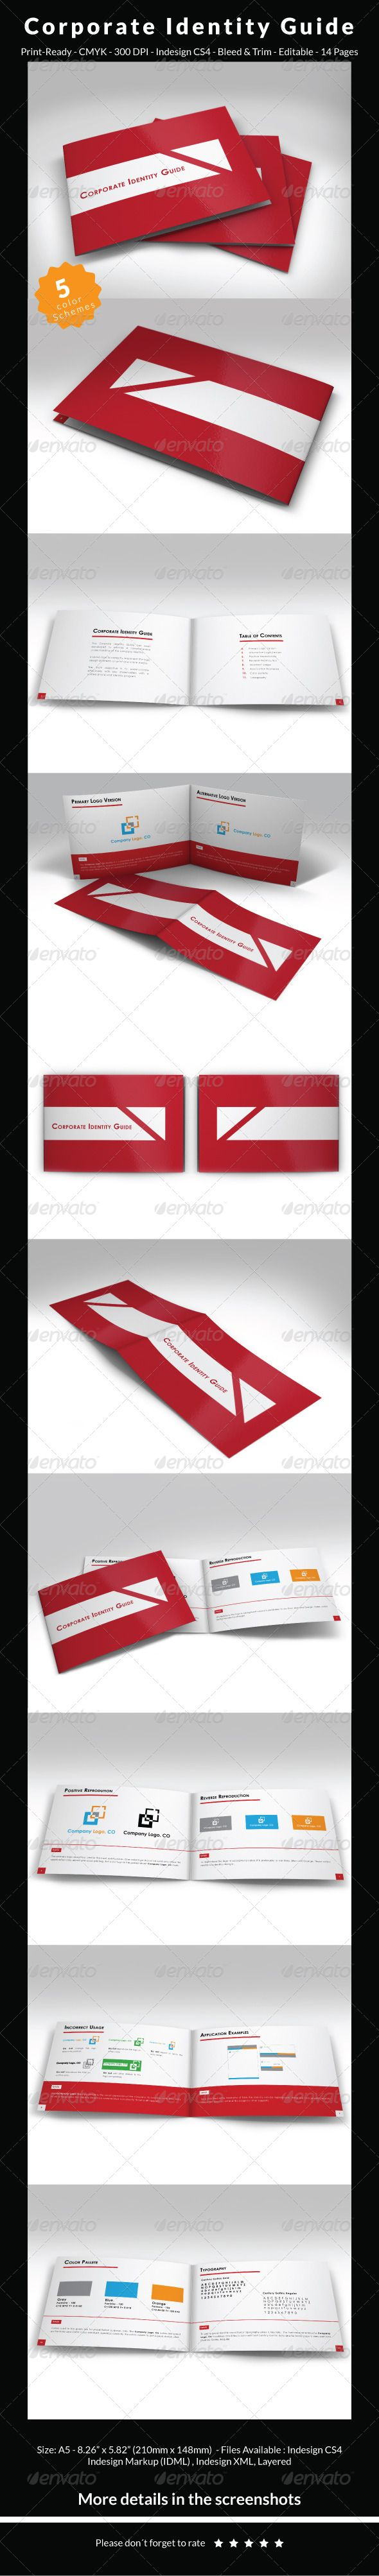 Guide Templates Corporate Identity Guide Template  Pinterest  Corporate Identity .